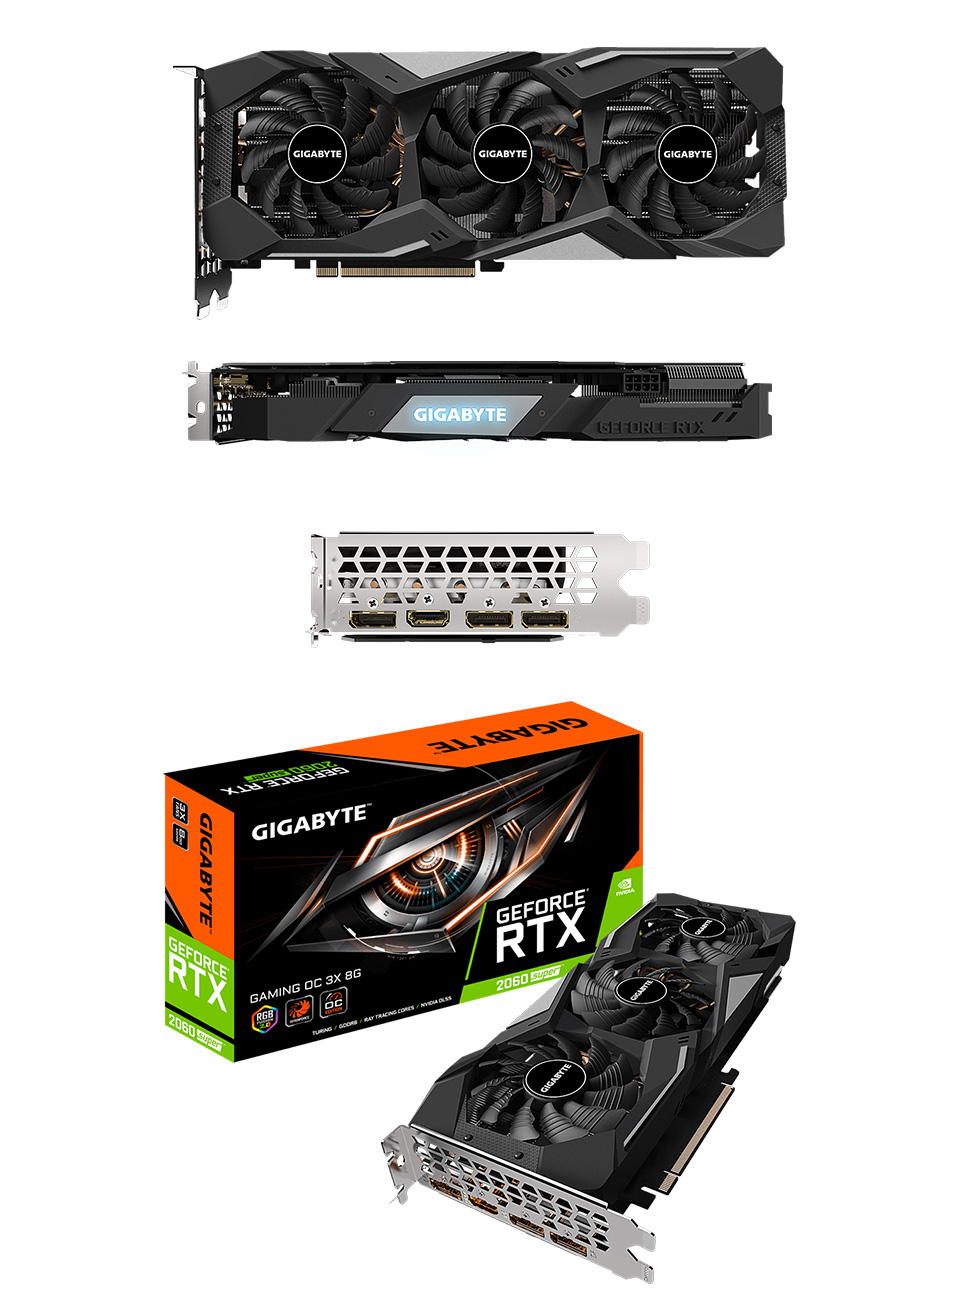 Gigabyte GeForce RTX 2060 Super Gaming OC 3X R2 8GB product